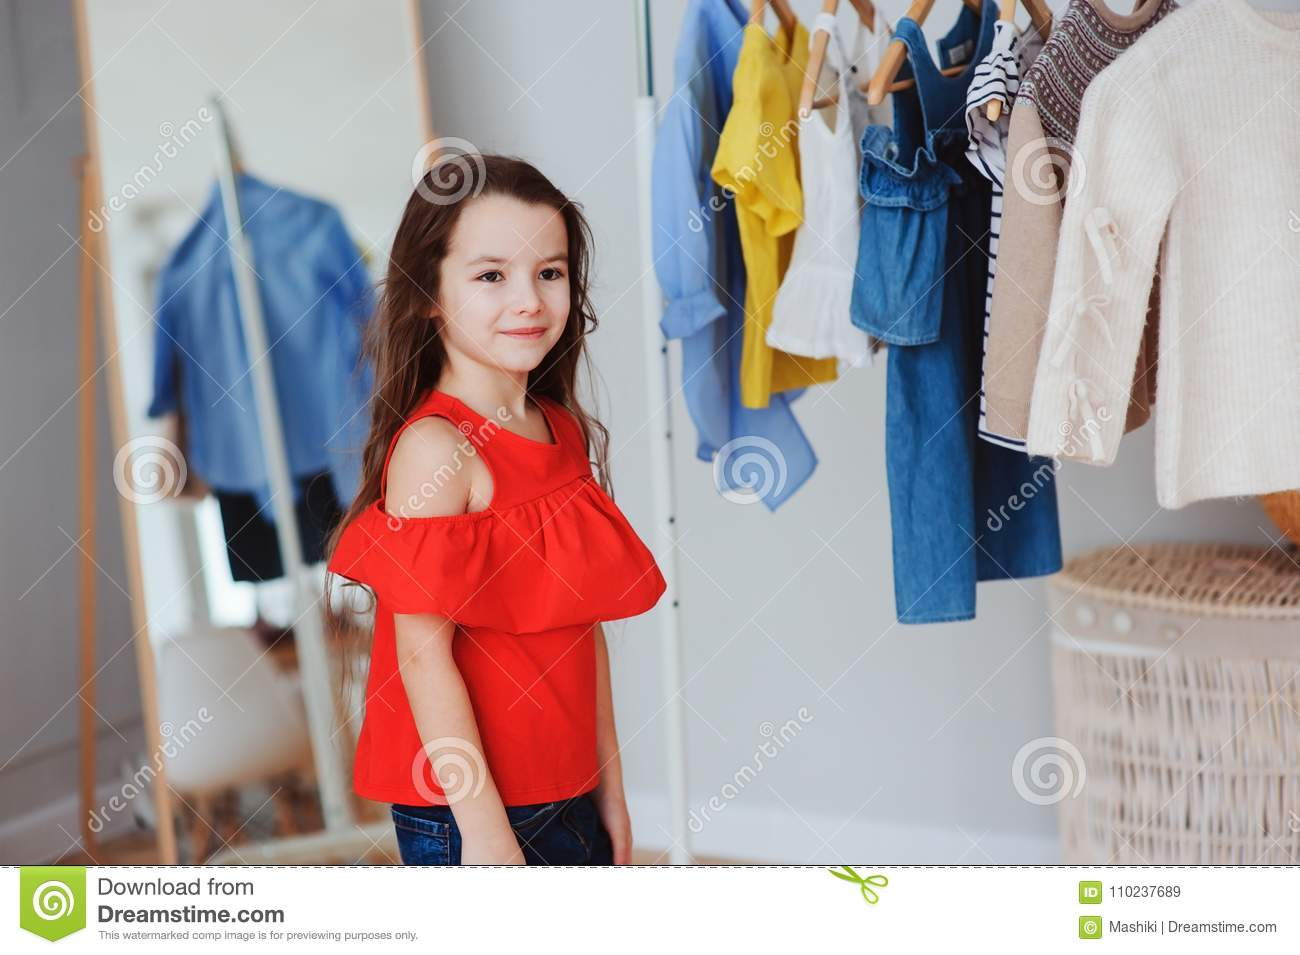 dab84301e3ad Cute Little Child Girl Choosing New Modern Clothes In Her Wardrobe ...